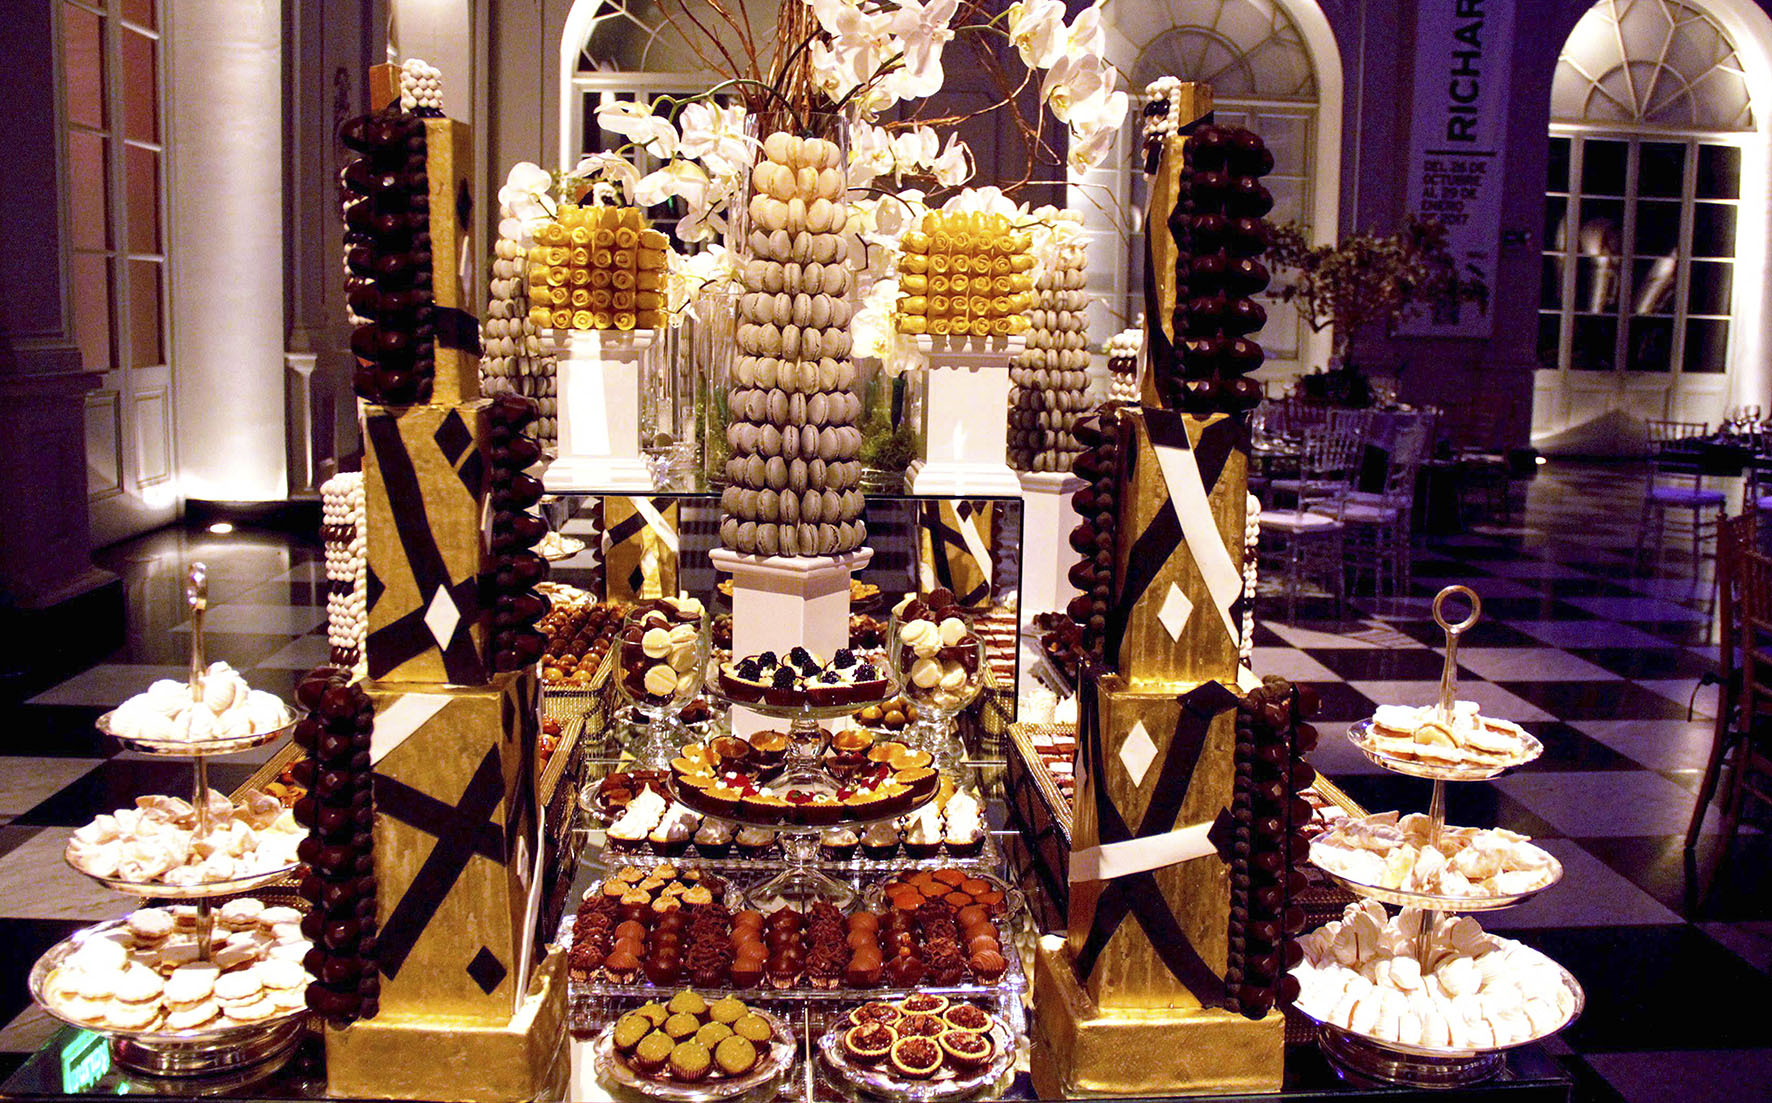 dessert table of chocolate